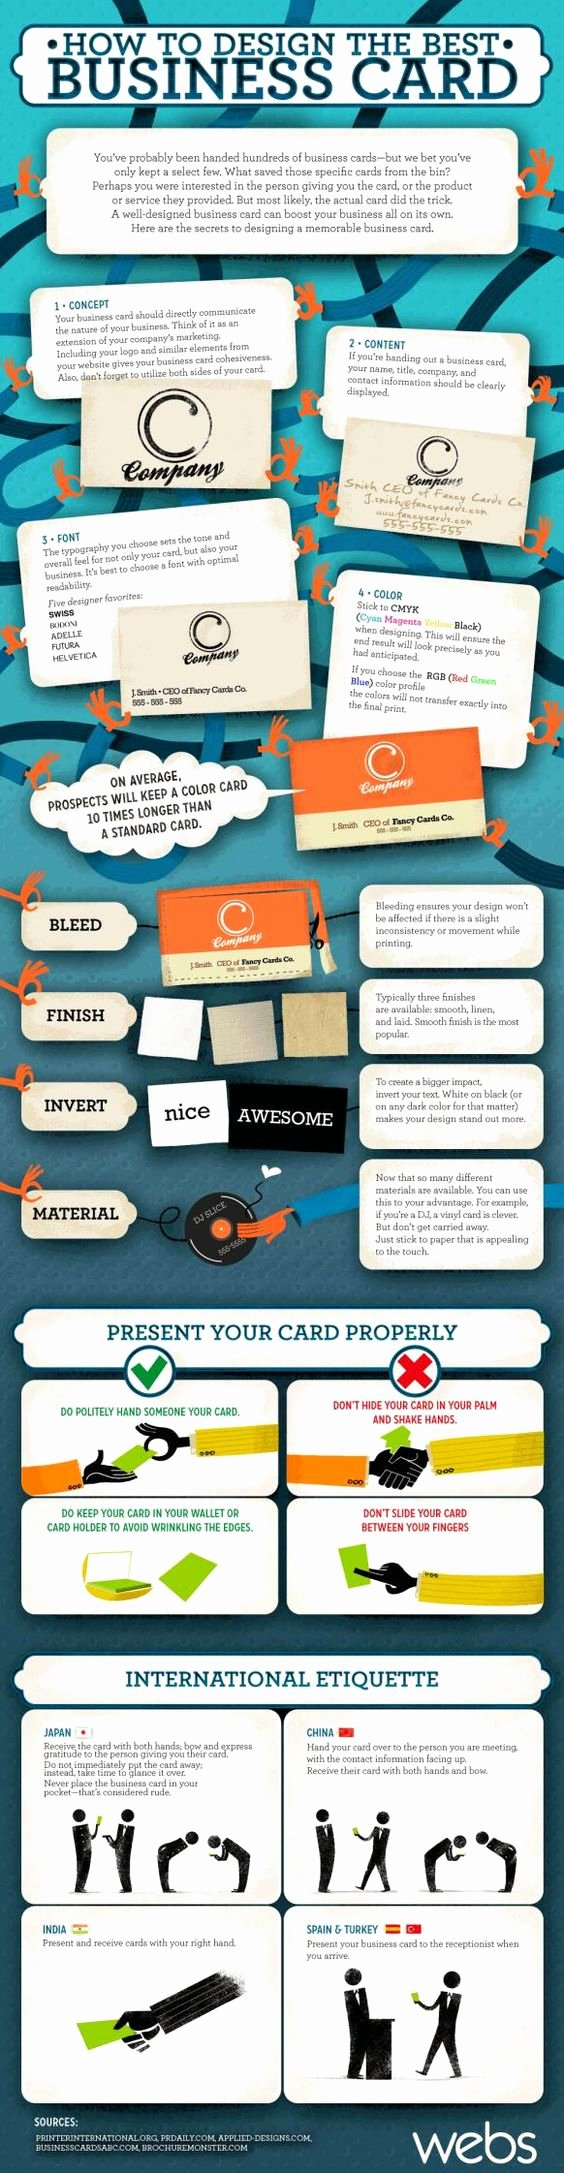 How to Design the Best Business Card Another Tip Use